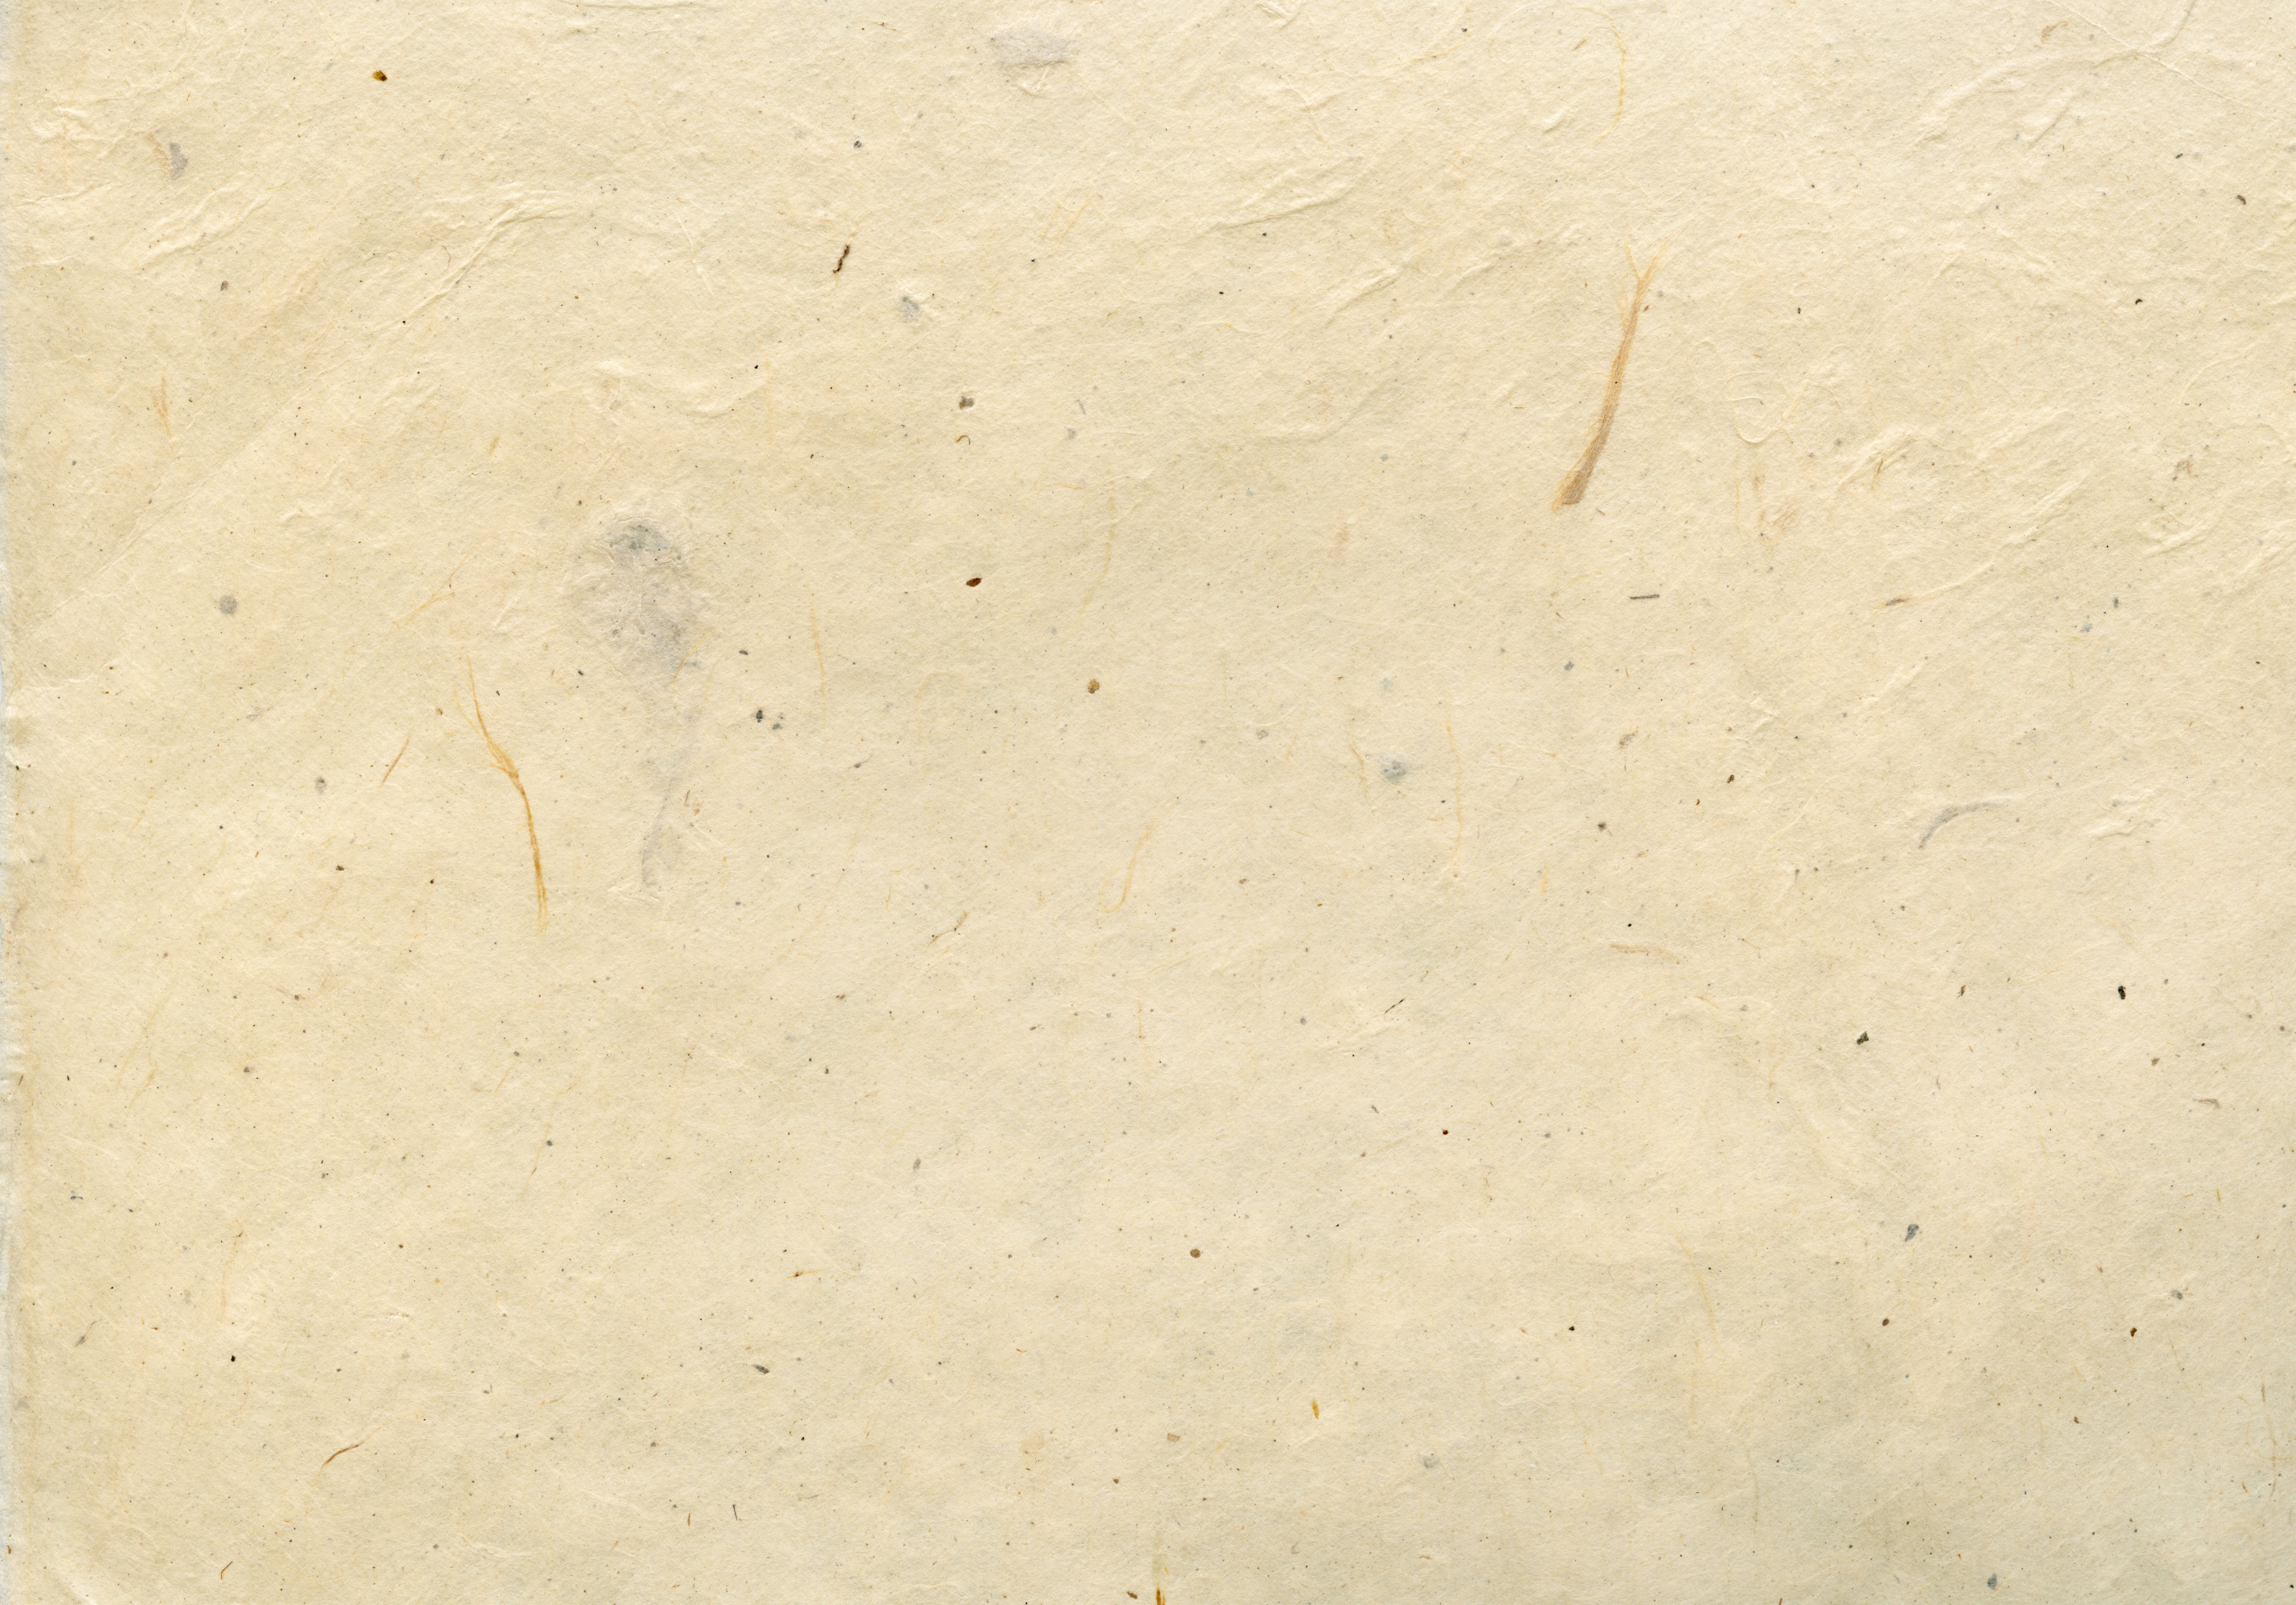 White Sand Paper White Grey Handmade Handmade Paper Texture Papyrus Parchment Structure Backgro Texture Images Free Texture Backgrounds Handmade Paper